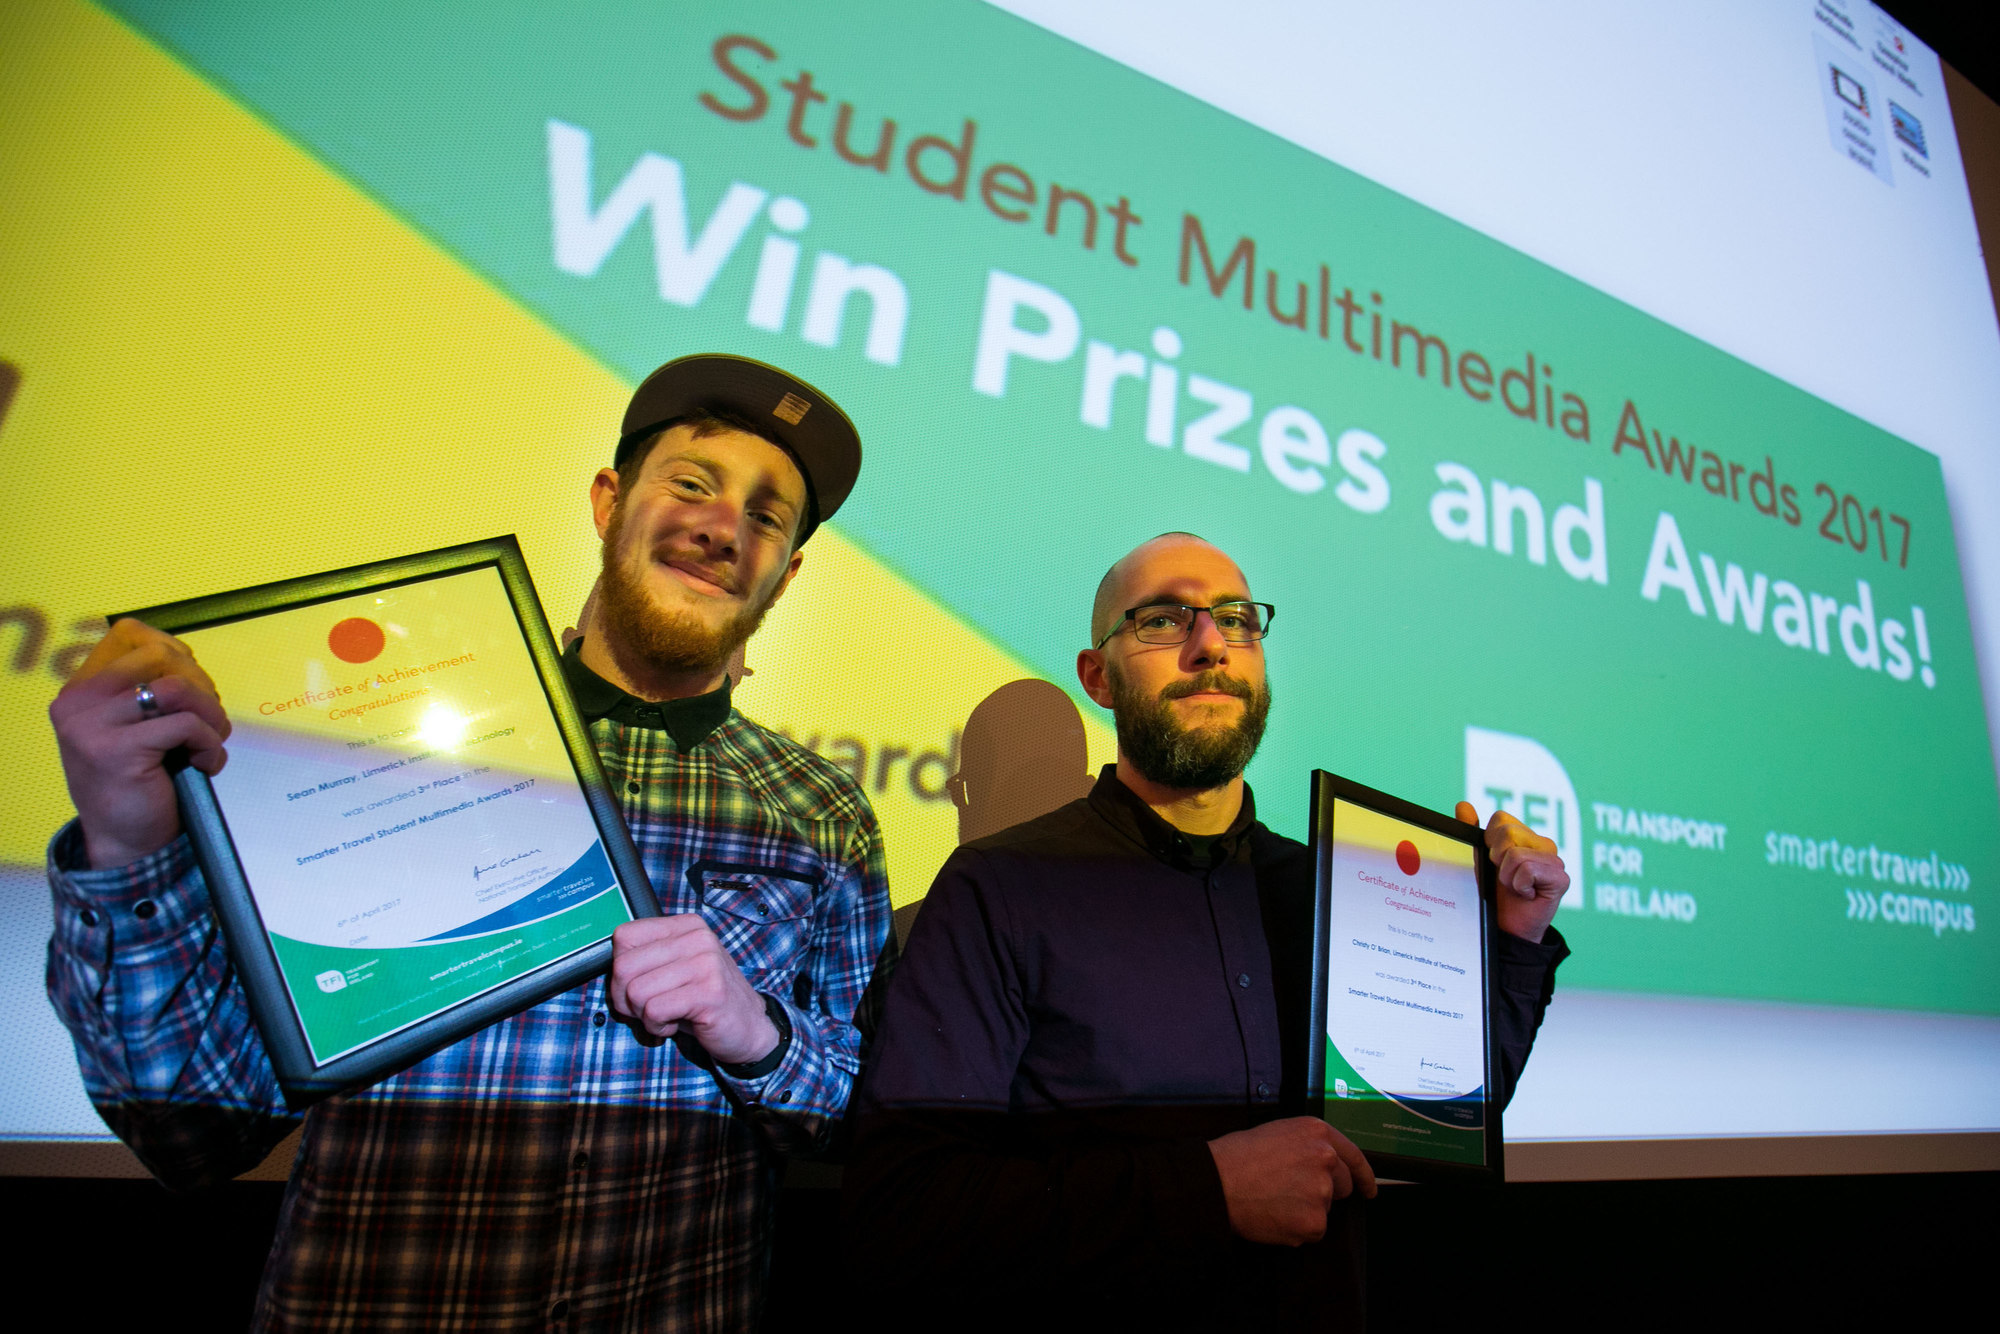 Smarter Travel Student Multimedia Awards 2017